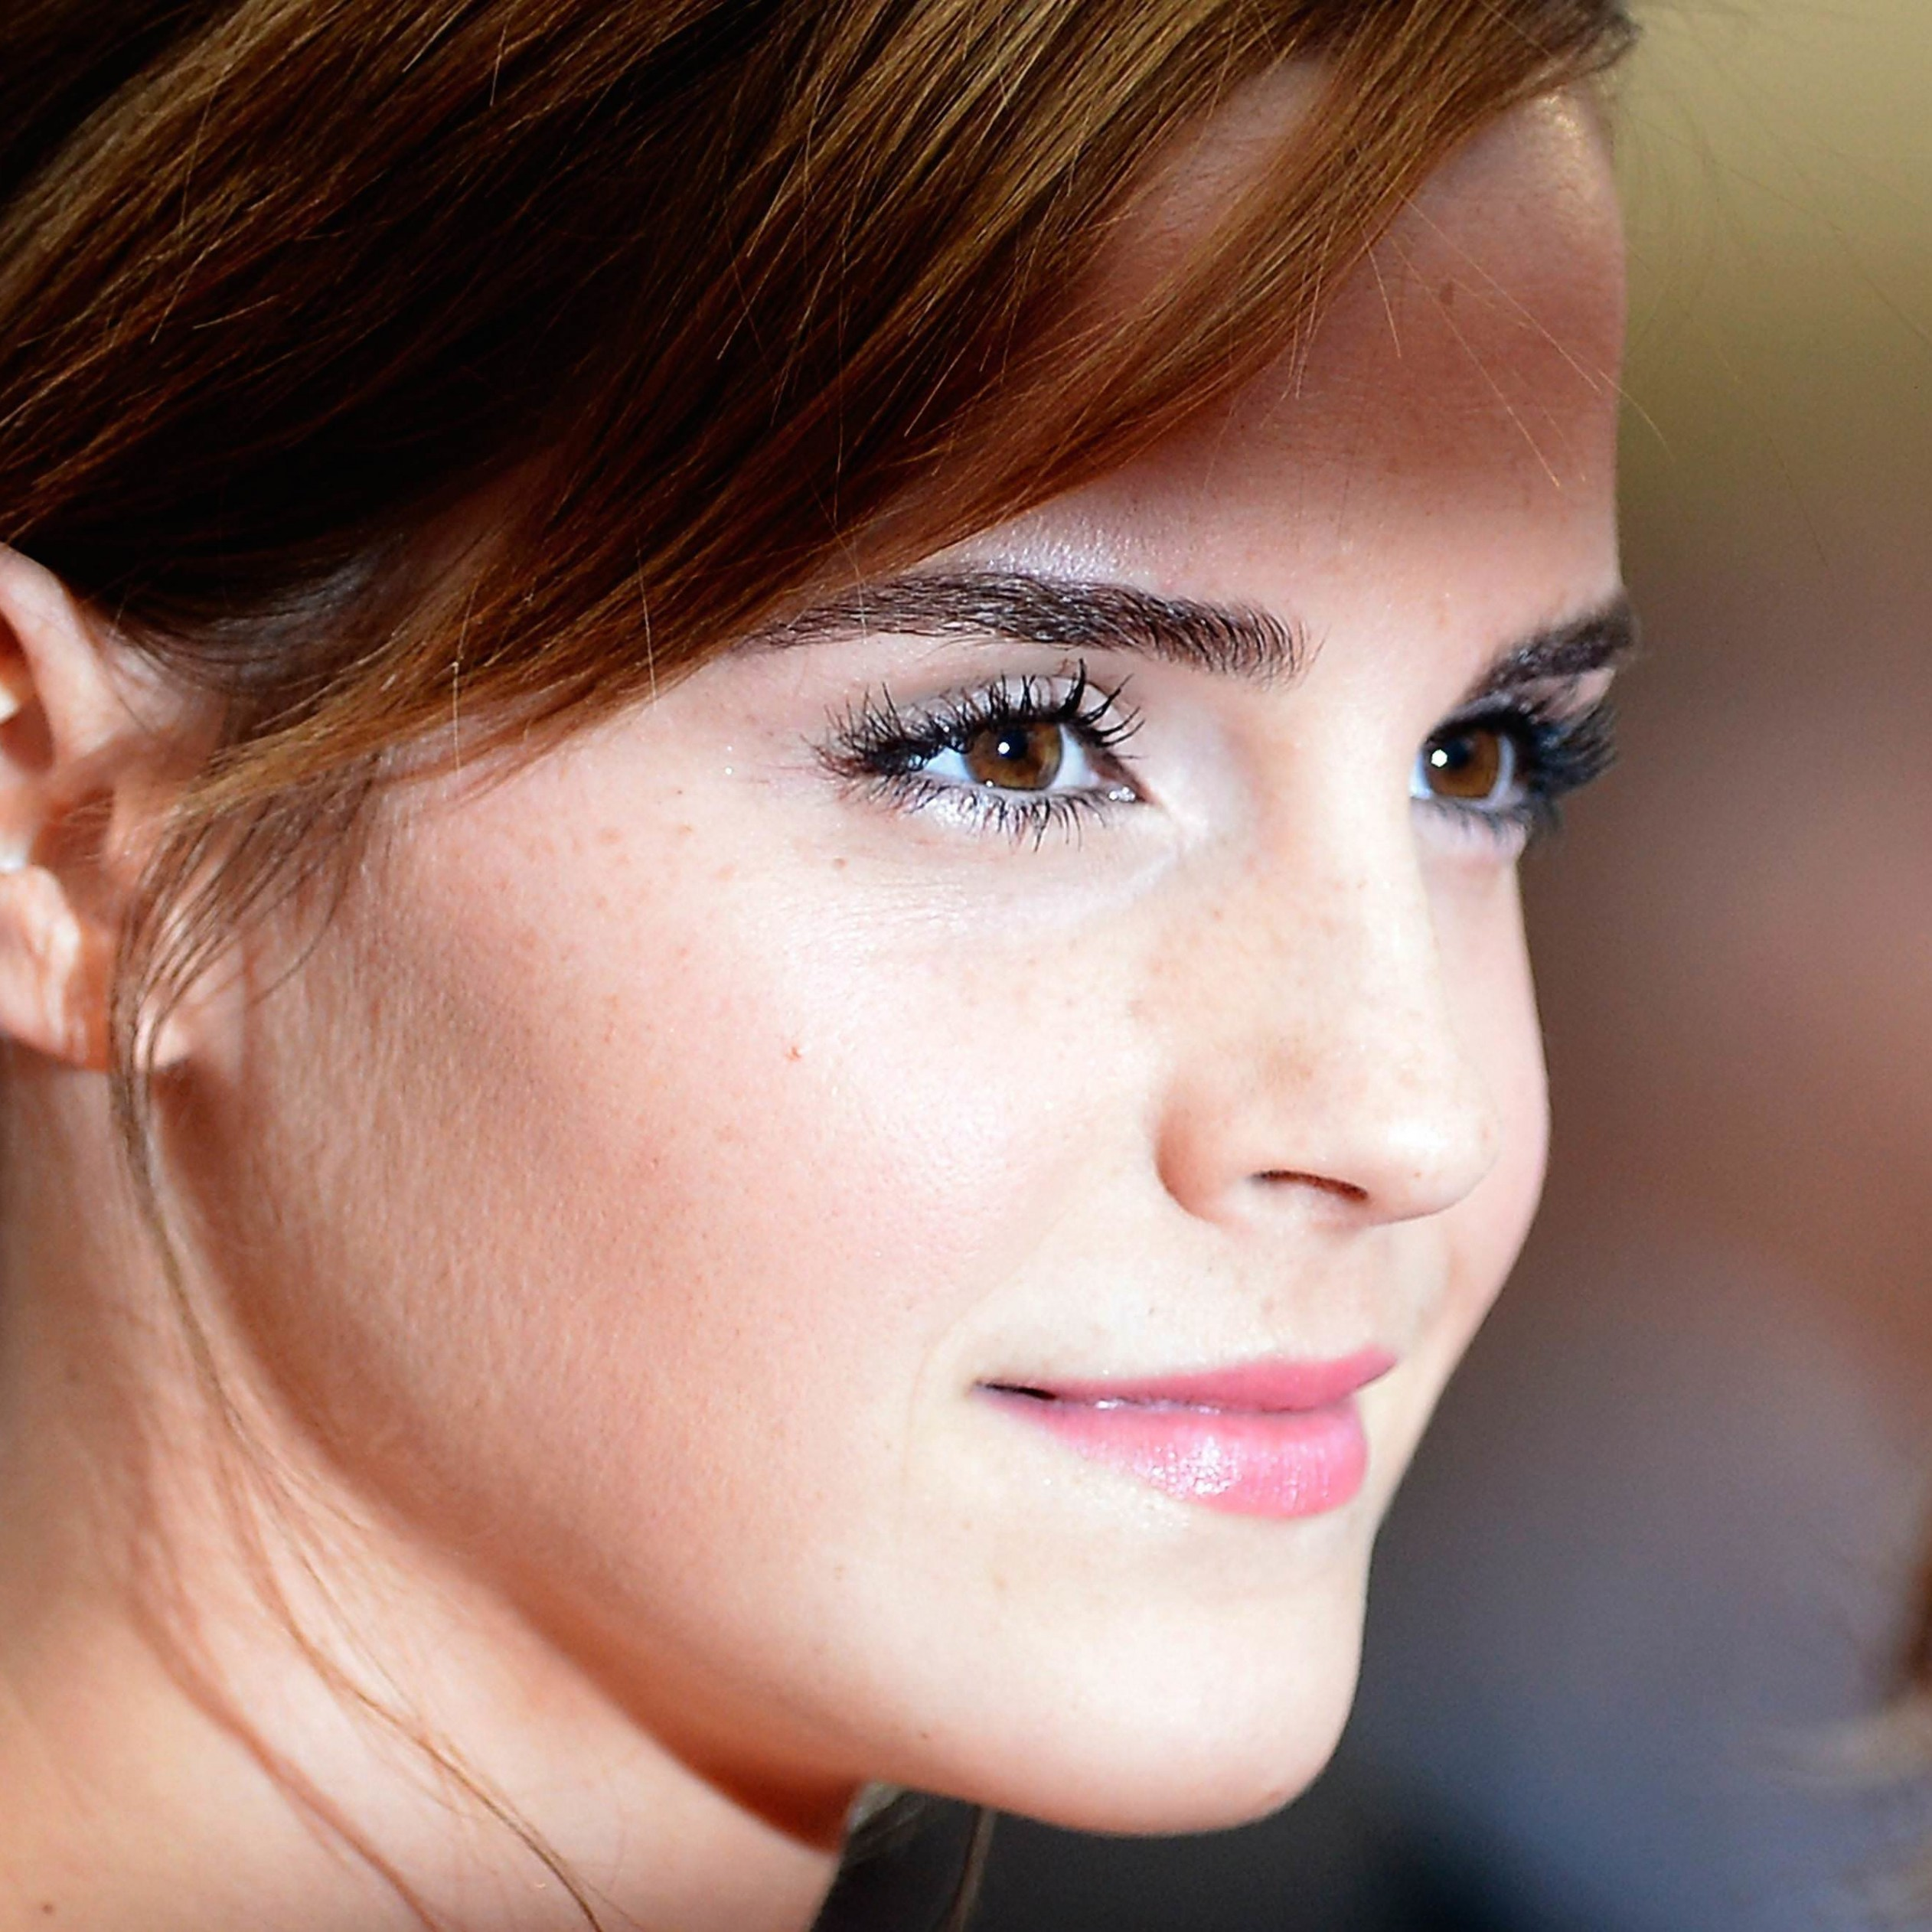 Emma Watson Wallpaper for Apple iPad 3